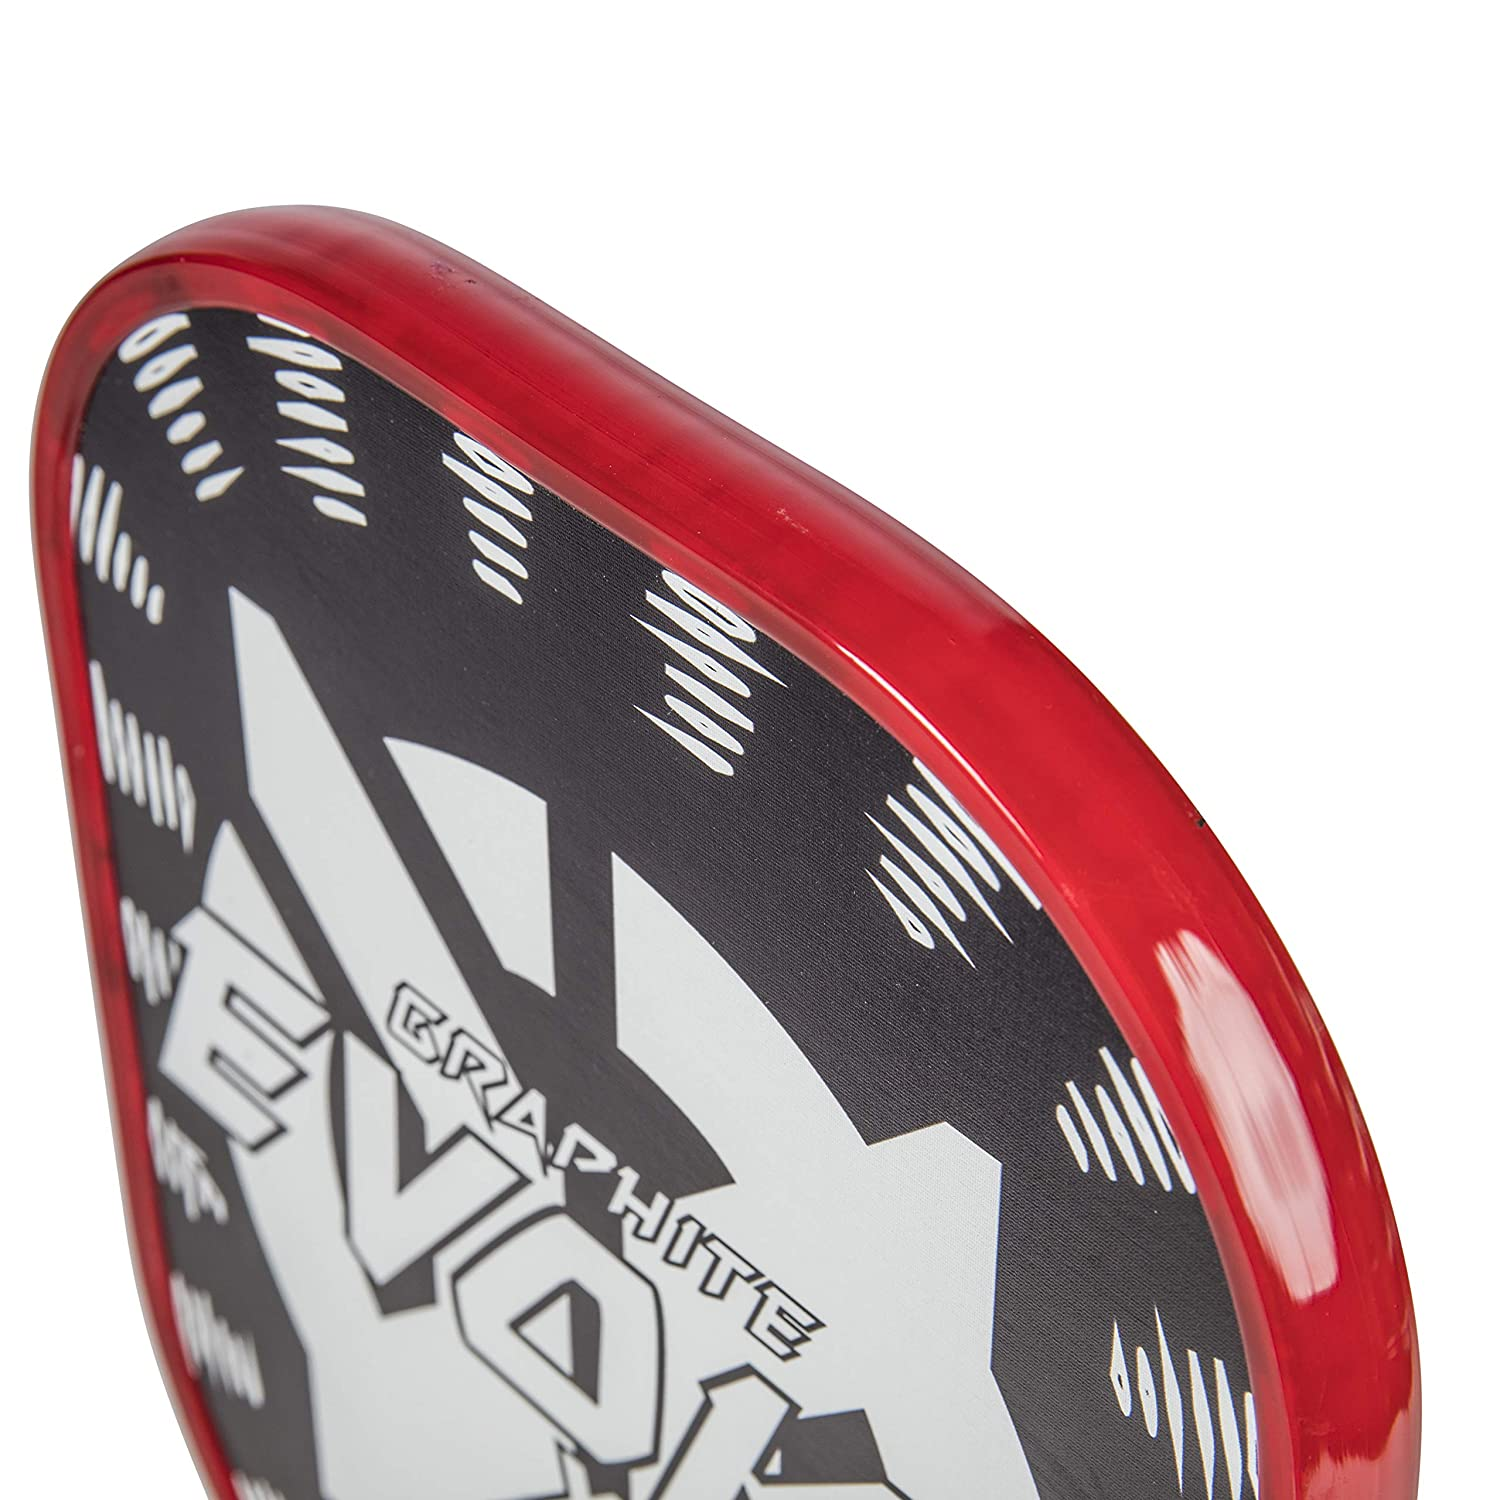 Graphite Face Onix Graphite Evoke XL Pickleball Paddle Features Polypropylene Core and Oversized Shape